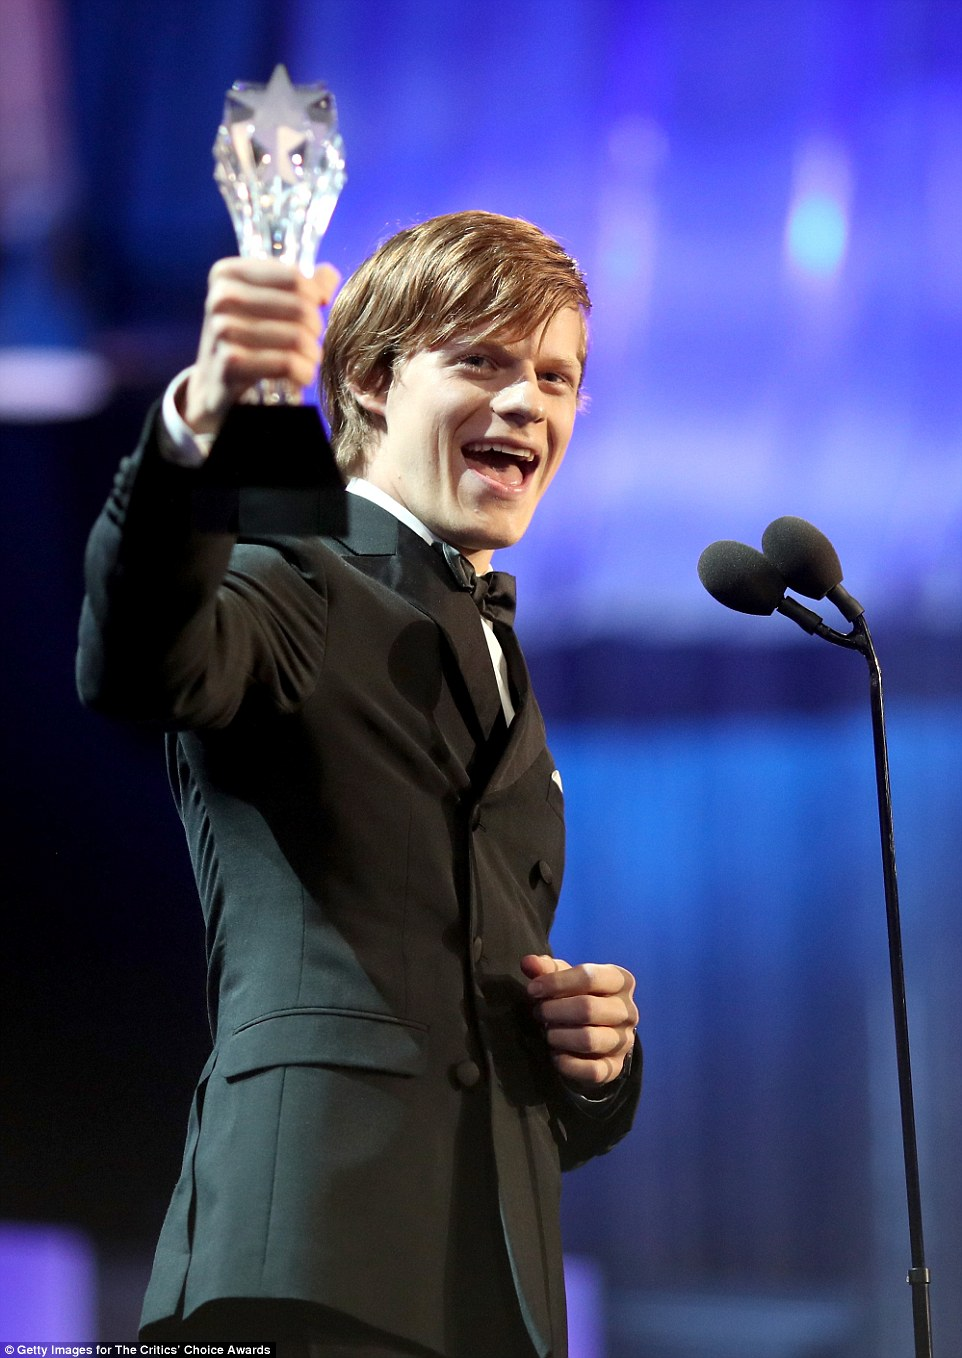 Quite the future ahead of him: Lucas Hedges accepted the Best Younger Actor award